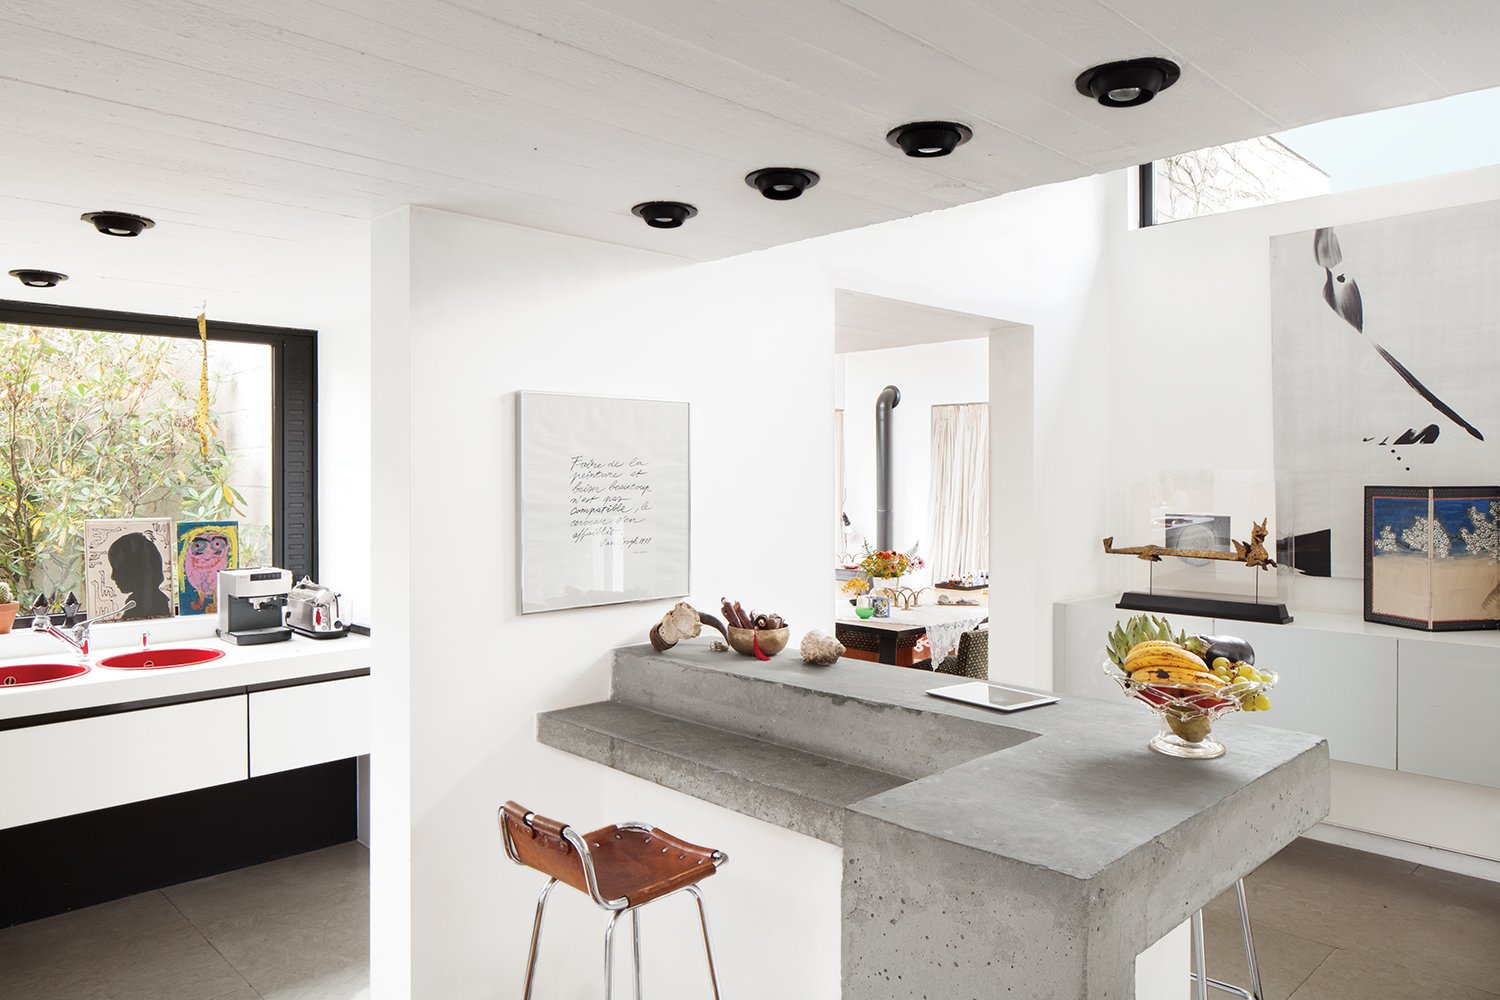 Kitchen, Concrete, Recessed, White, and Cement Tile Smitten from the start with a 1970s concrete villa in rural Belgium, a resident and her designer embark on a sensitive renovation that excises the bad (carpeted walls, dark rooms) and highlights the good (idyllic setting, statement architecture). Owner Nathalie Vandemoortele worked with designer Renaud de Poorter on the interior renovations, which included opening up the heavy structure with the help of new windows and doors to the outside. A concrete bi-level island keeps the Brutalist vibe on the interior, but is open and light enough to feel balanced.  Best Kitchen White Cement Tile Photos from A Concrete Home in Rural Belgium